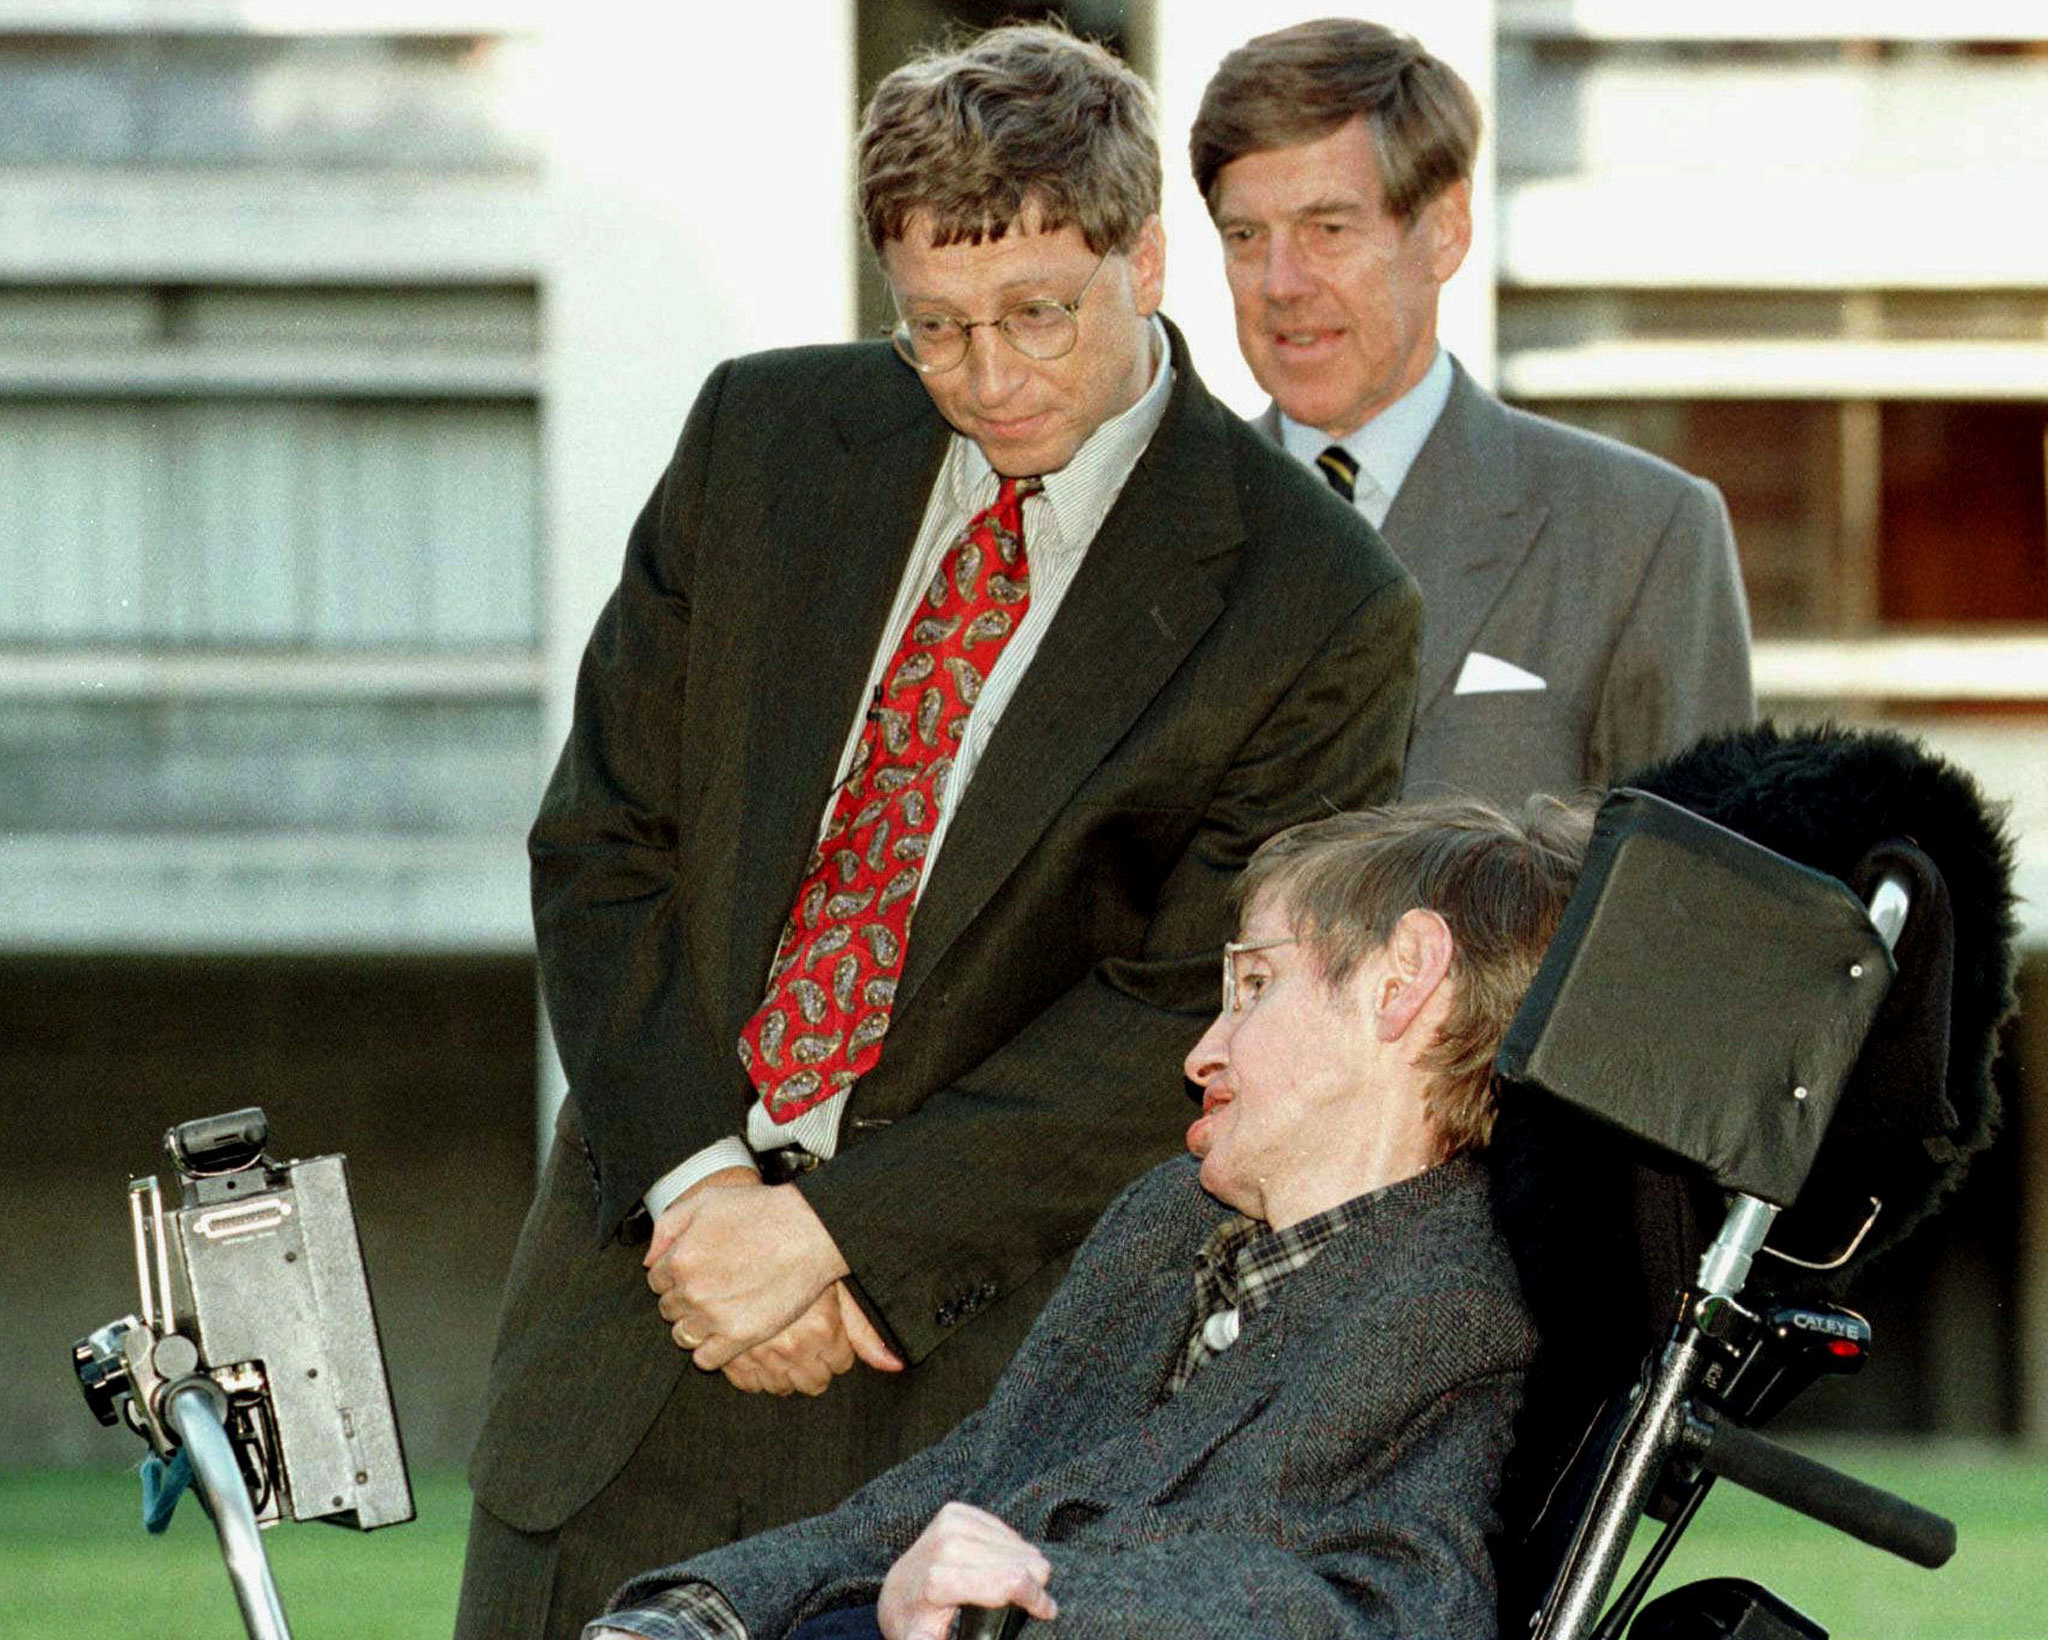 Con el fundador de Microsoft Bill Gates en Cambridge en 1997 (REUTERS/Stringer/archivo)